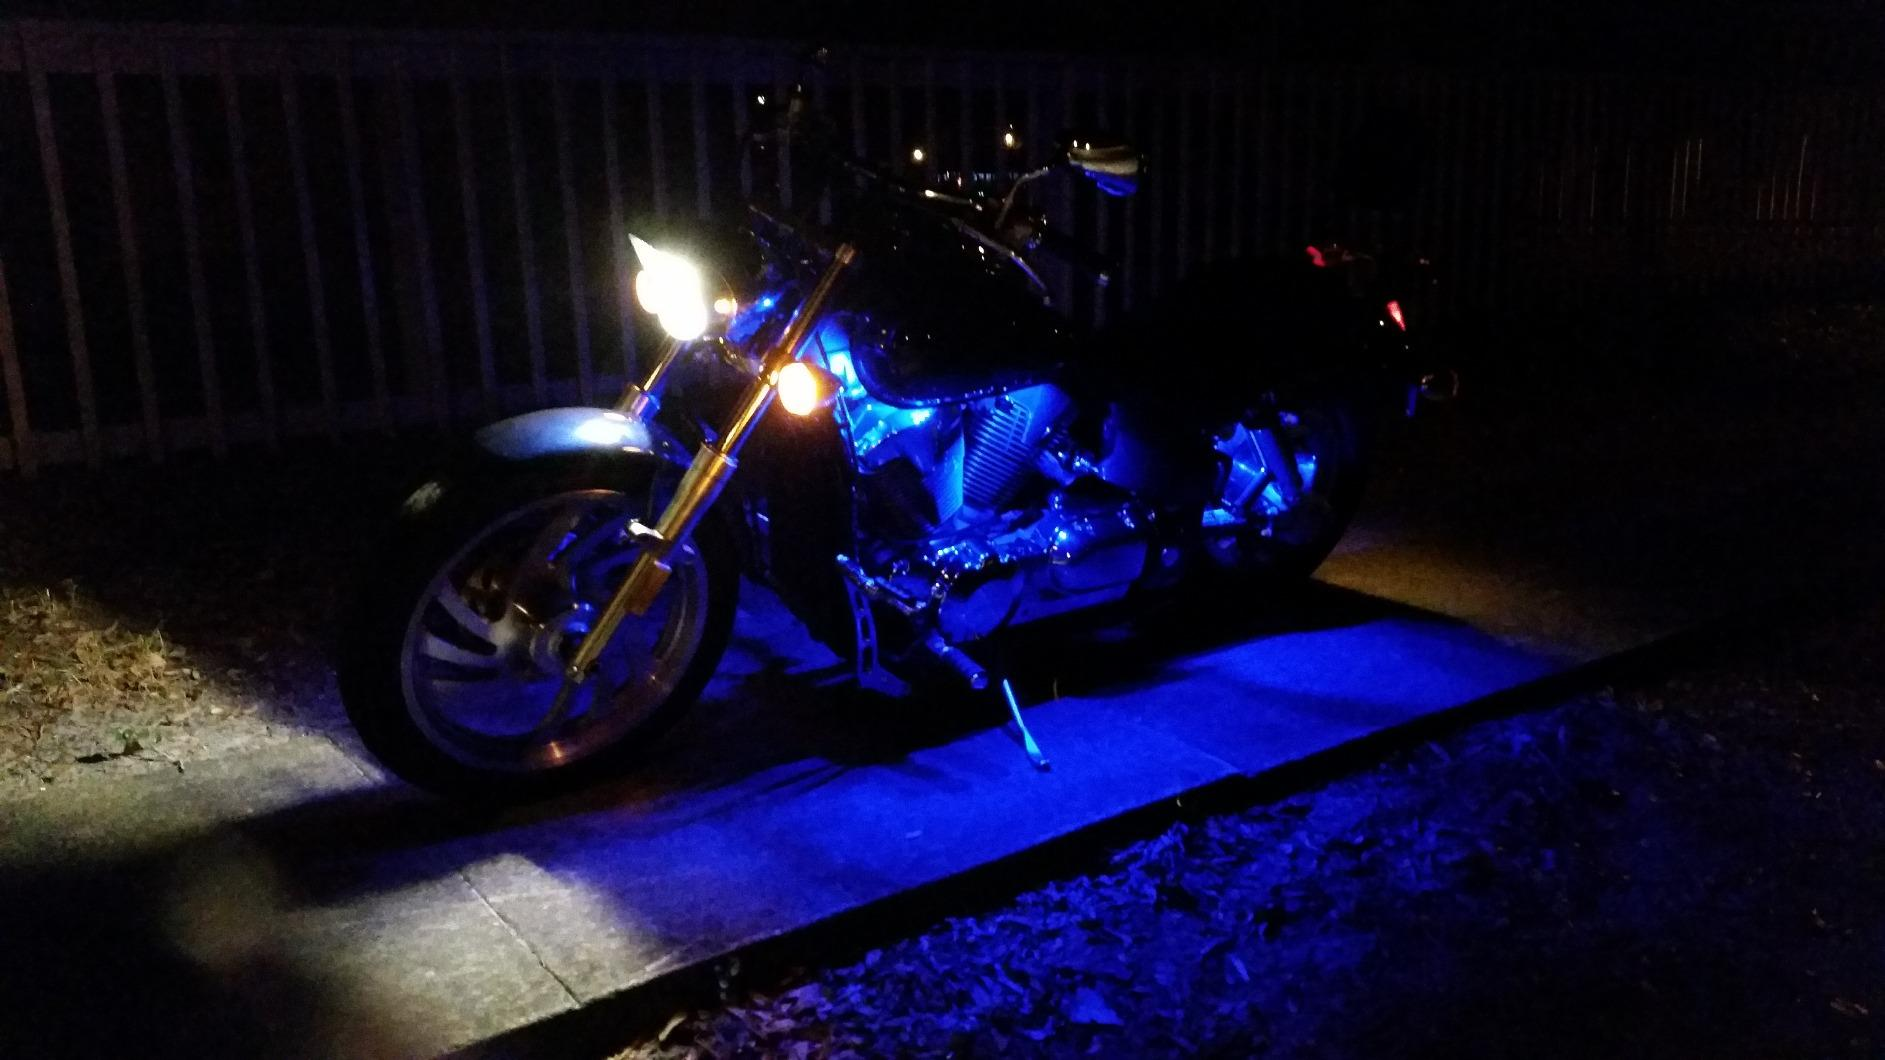 Harley davidson engine lighting accent engine interior body led lighting kits flexible strips mozeypictures Gallery